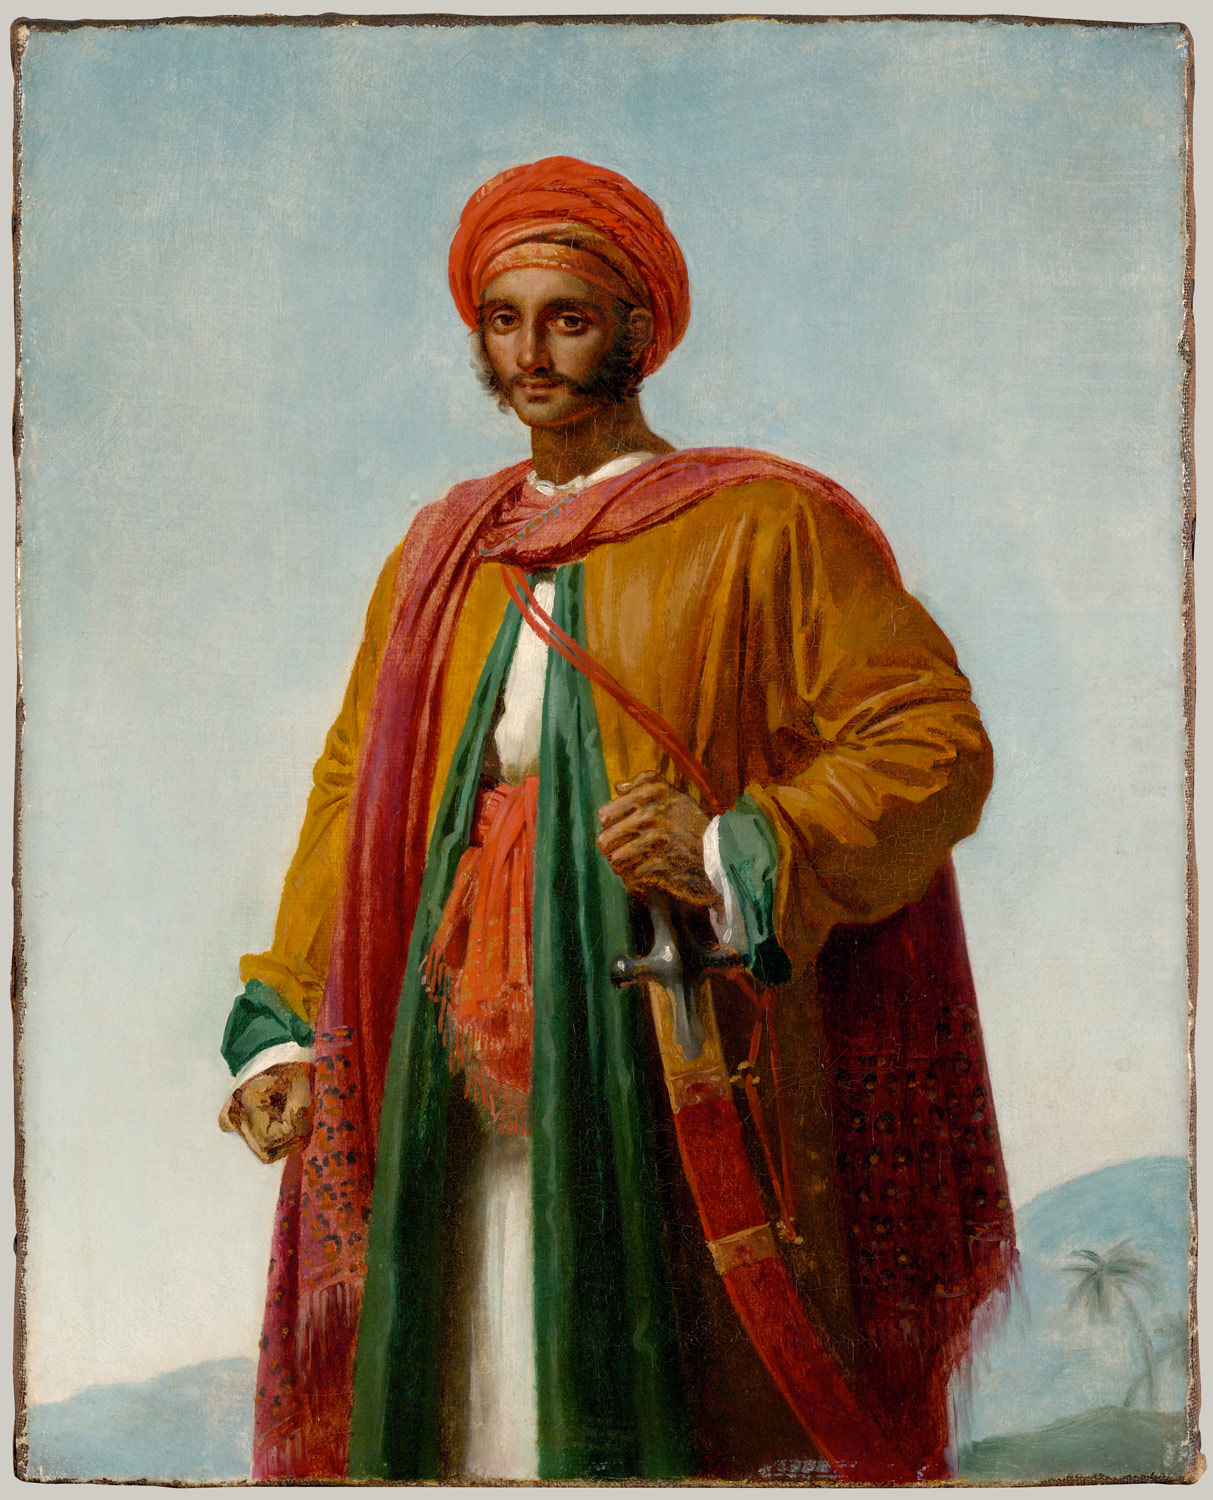 Study for Portrait of an Indian